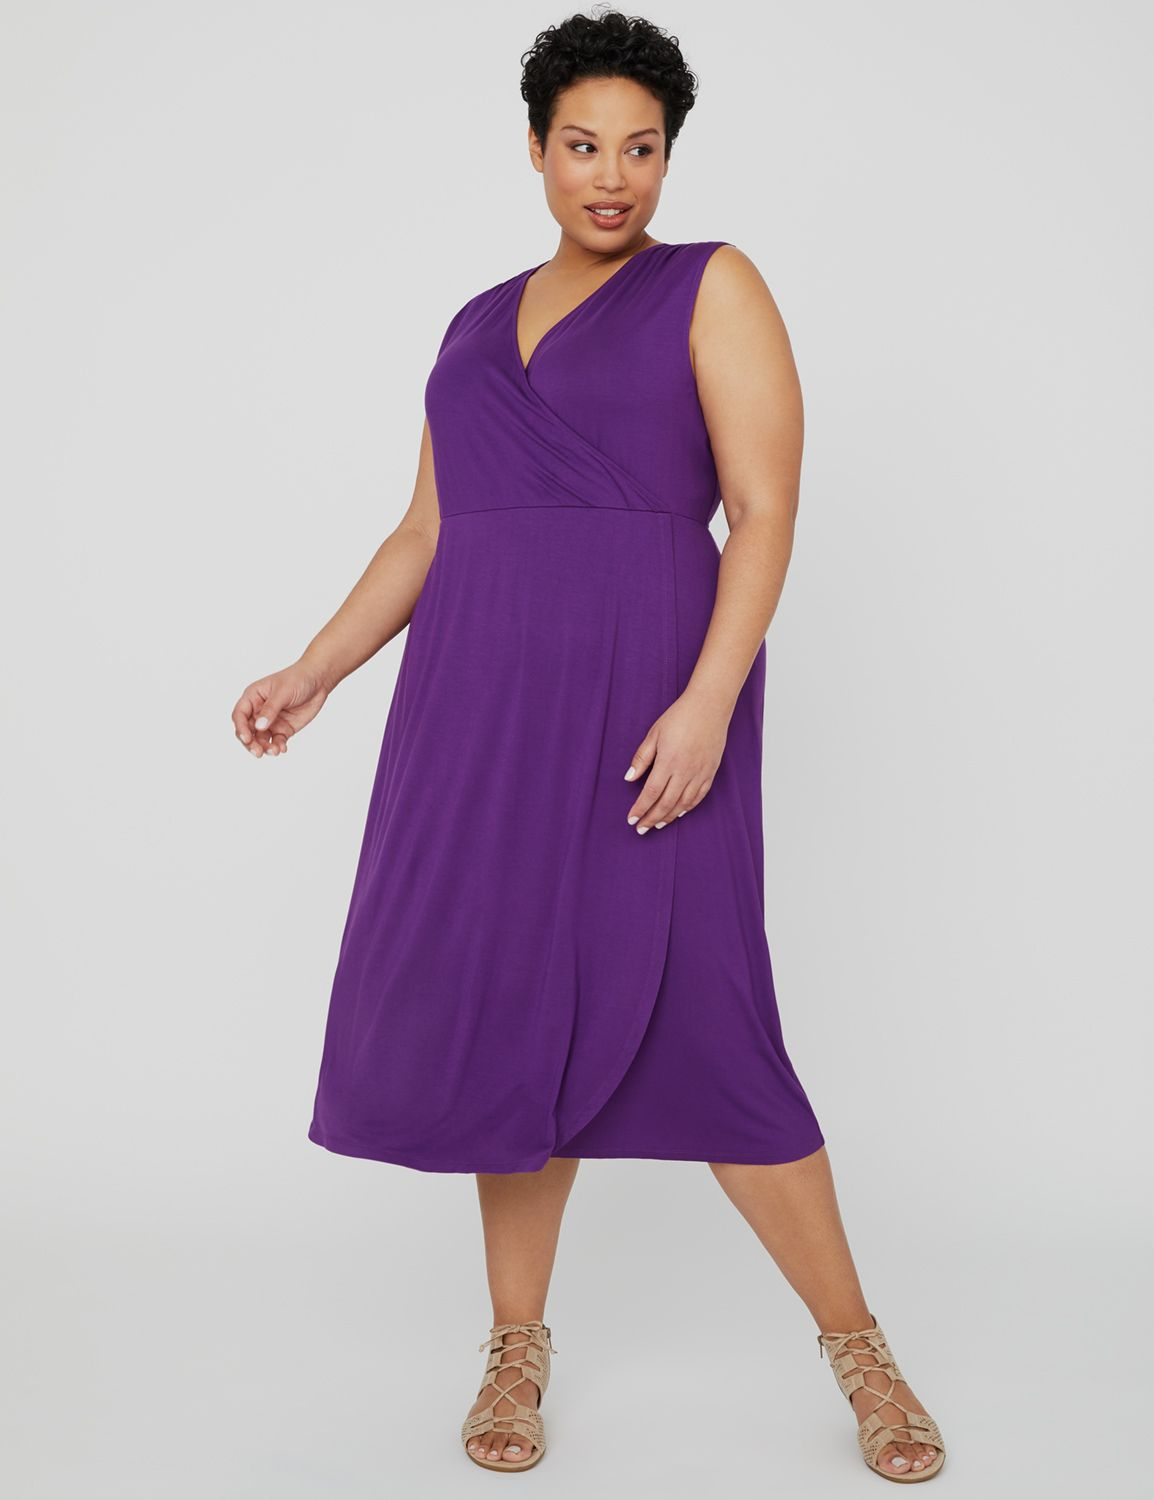 Riverview Wrap Dress 1088151 Vneck Front and Back Maxi E MP-300102355